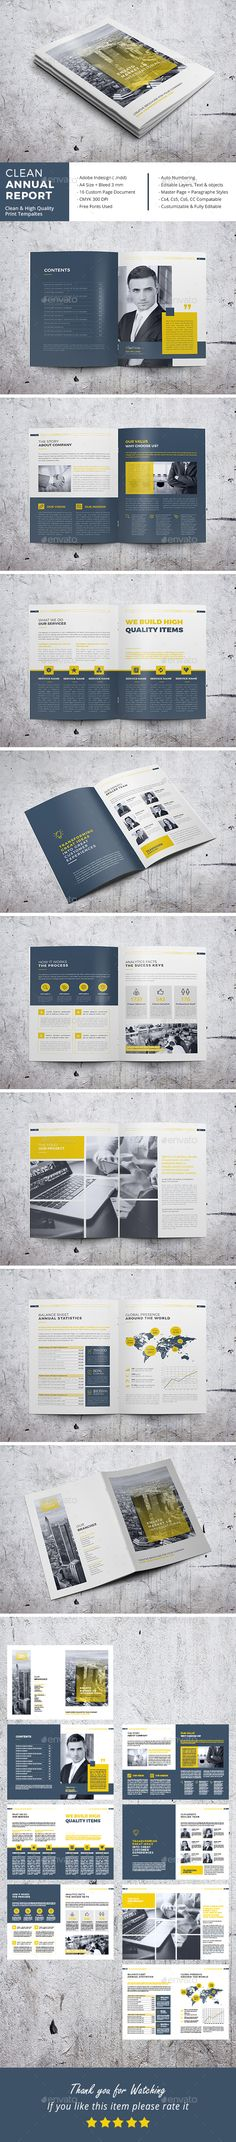 Clean Annual Report Brochure Template InDesign INDD